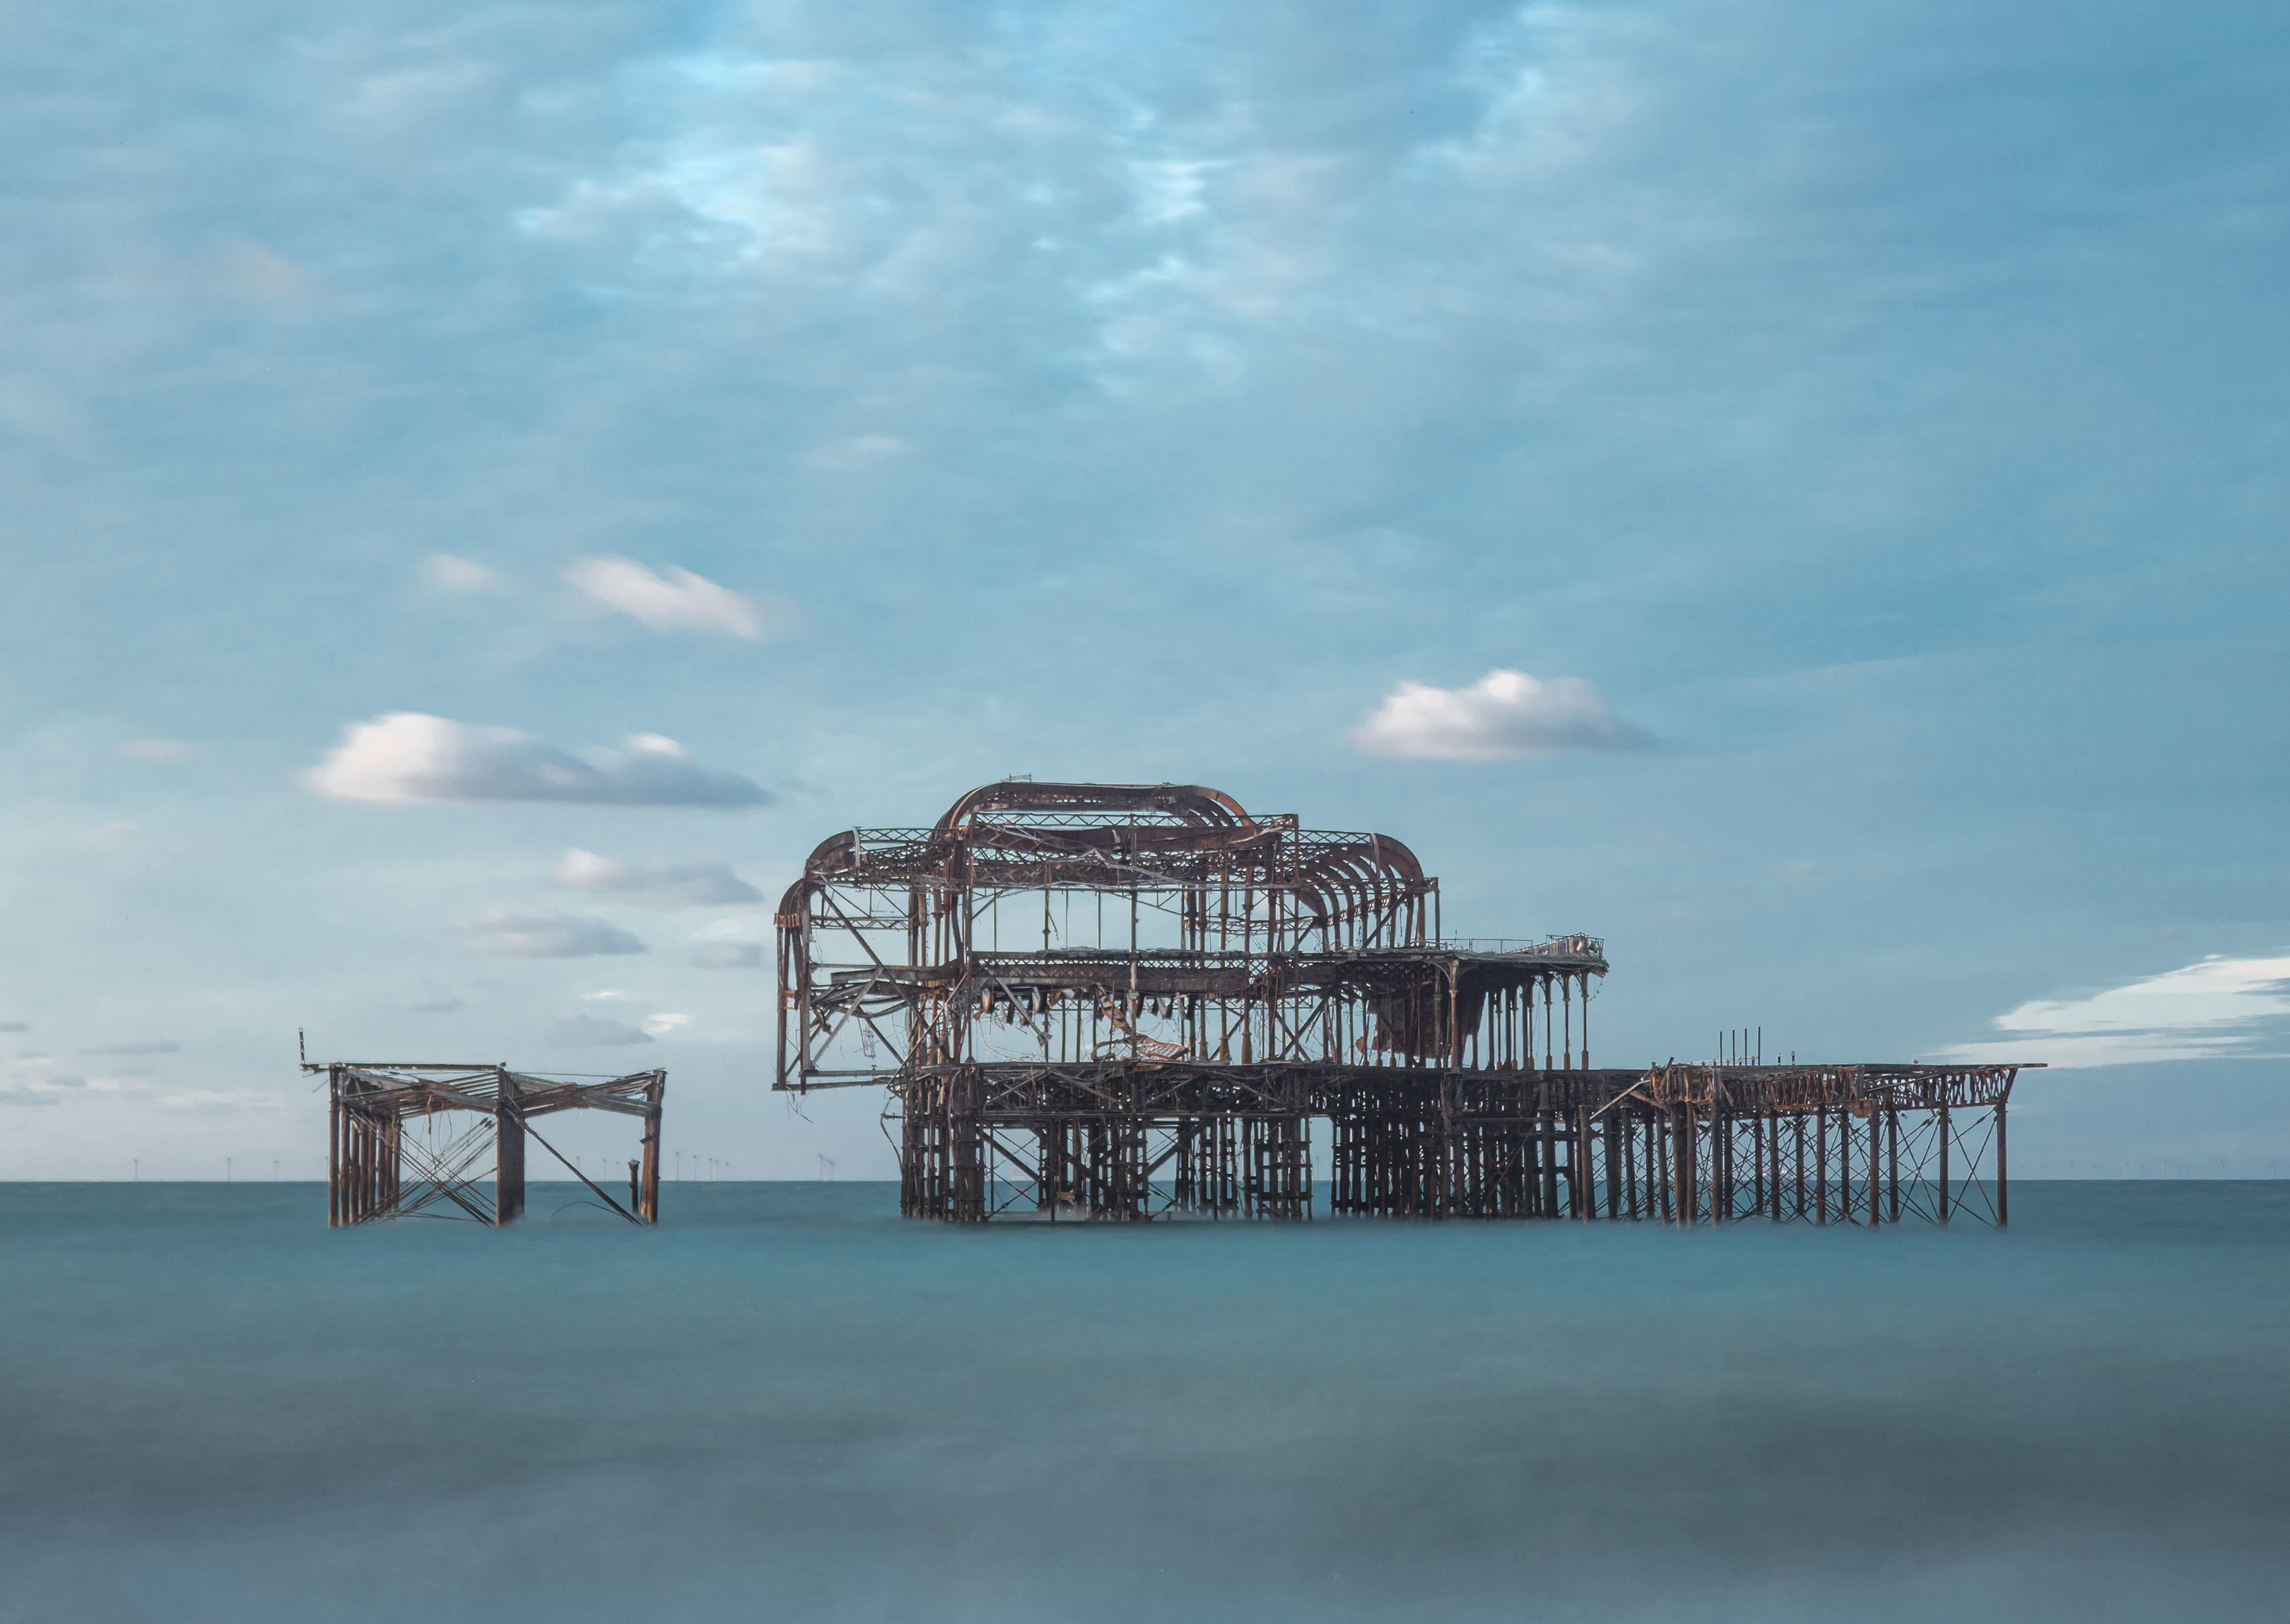 An image called West Pier from our collection